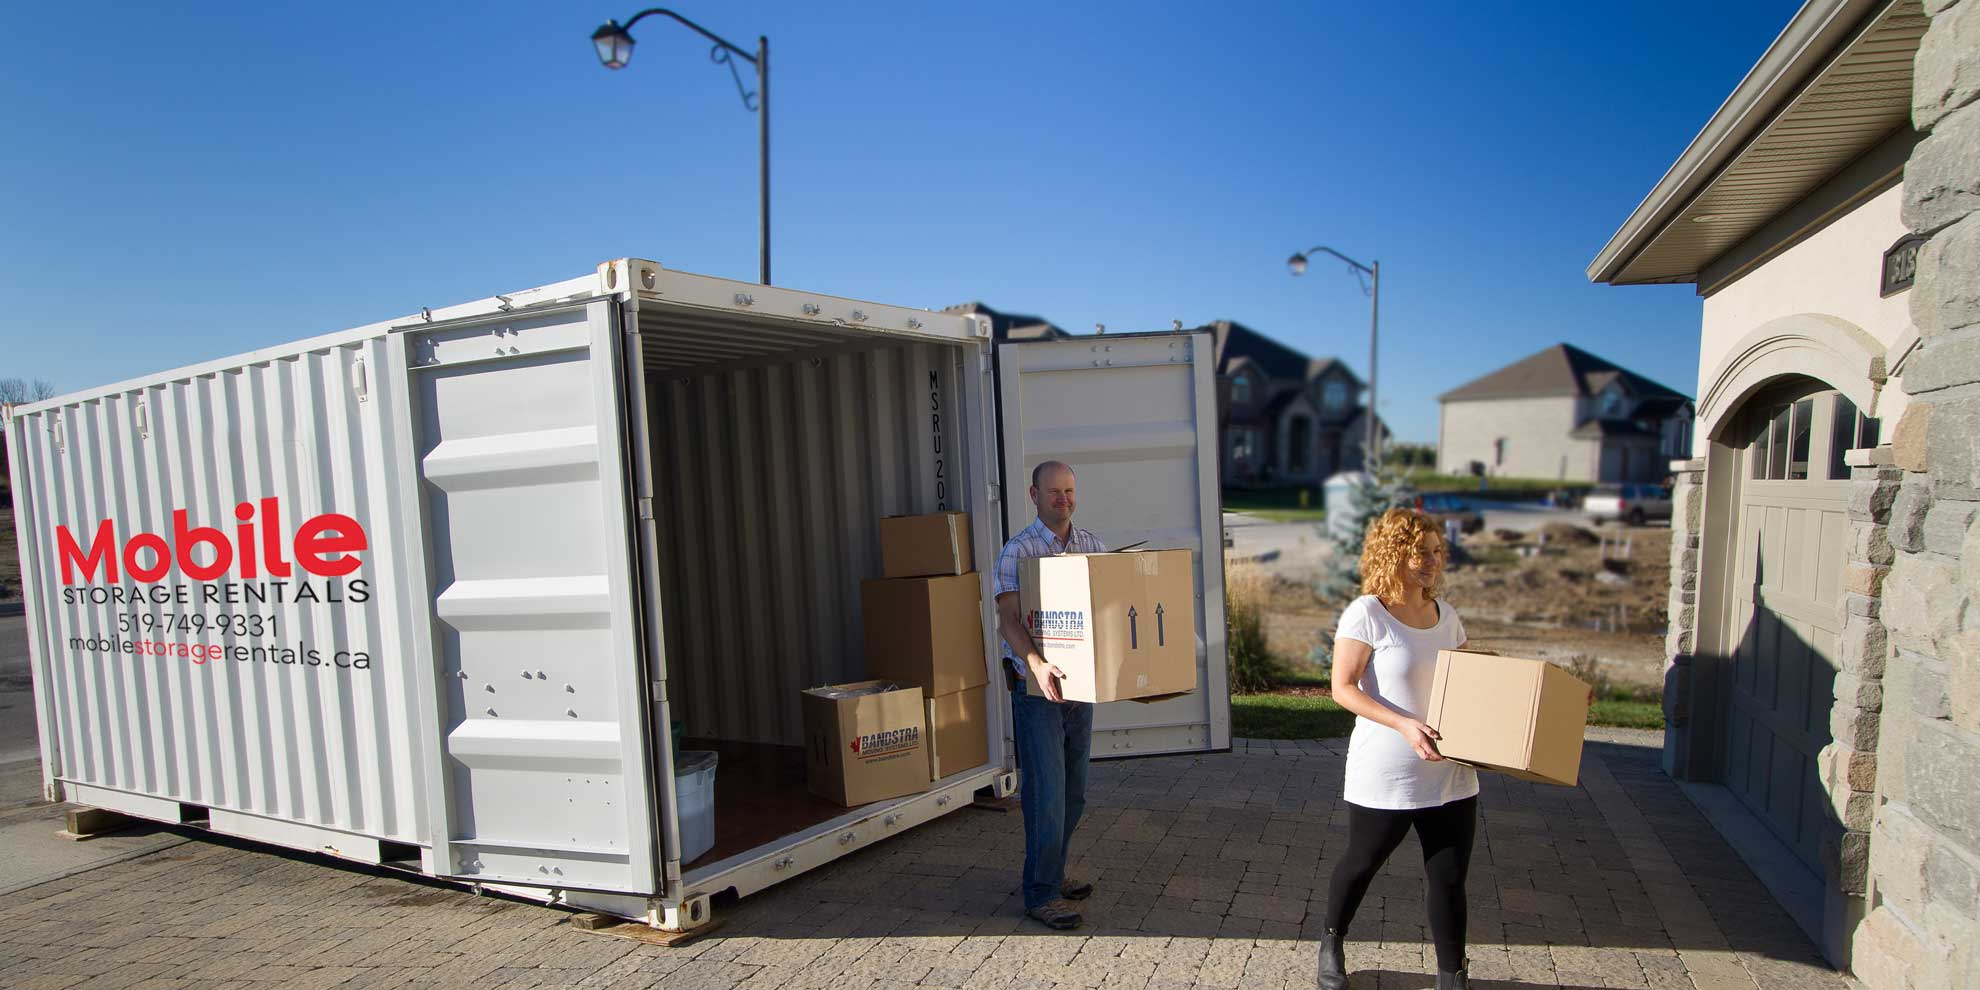 Using a mobile storage container for moving